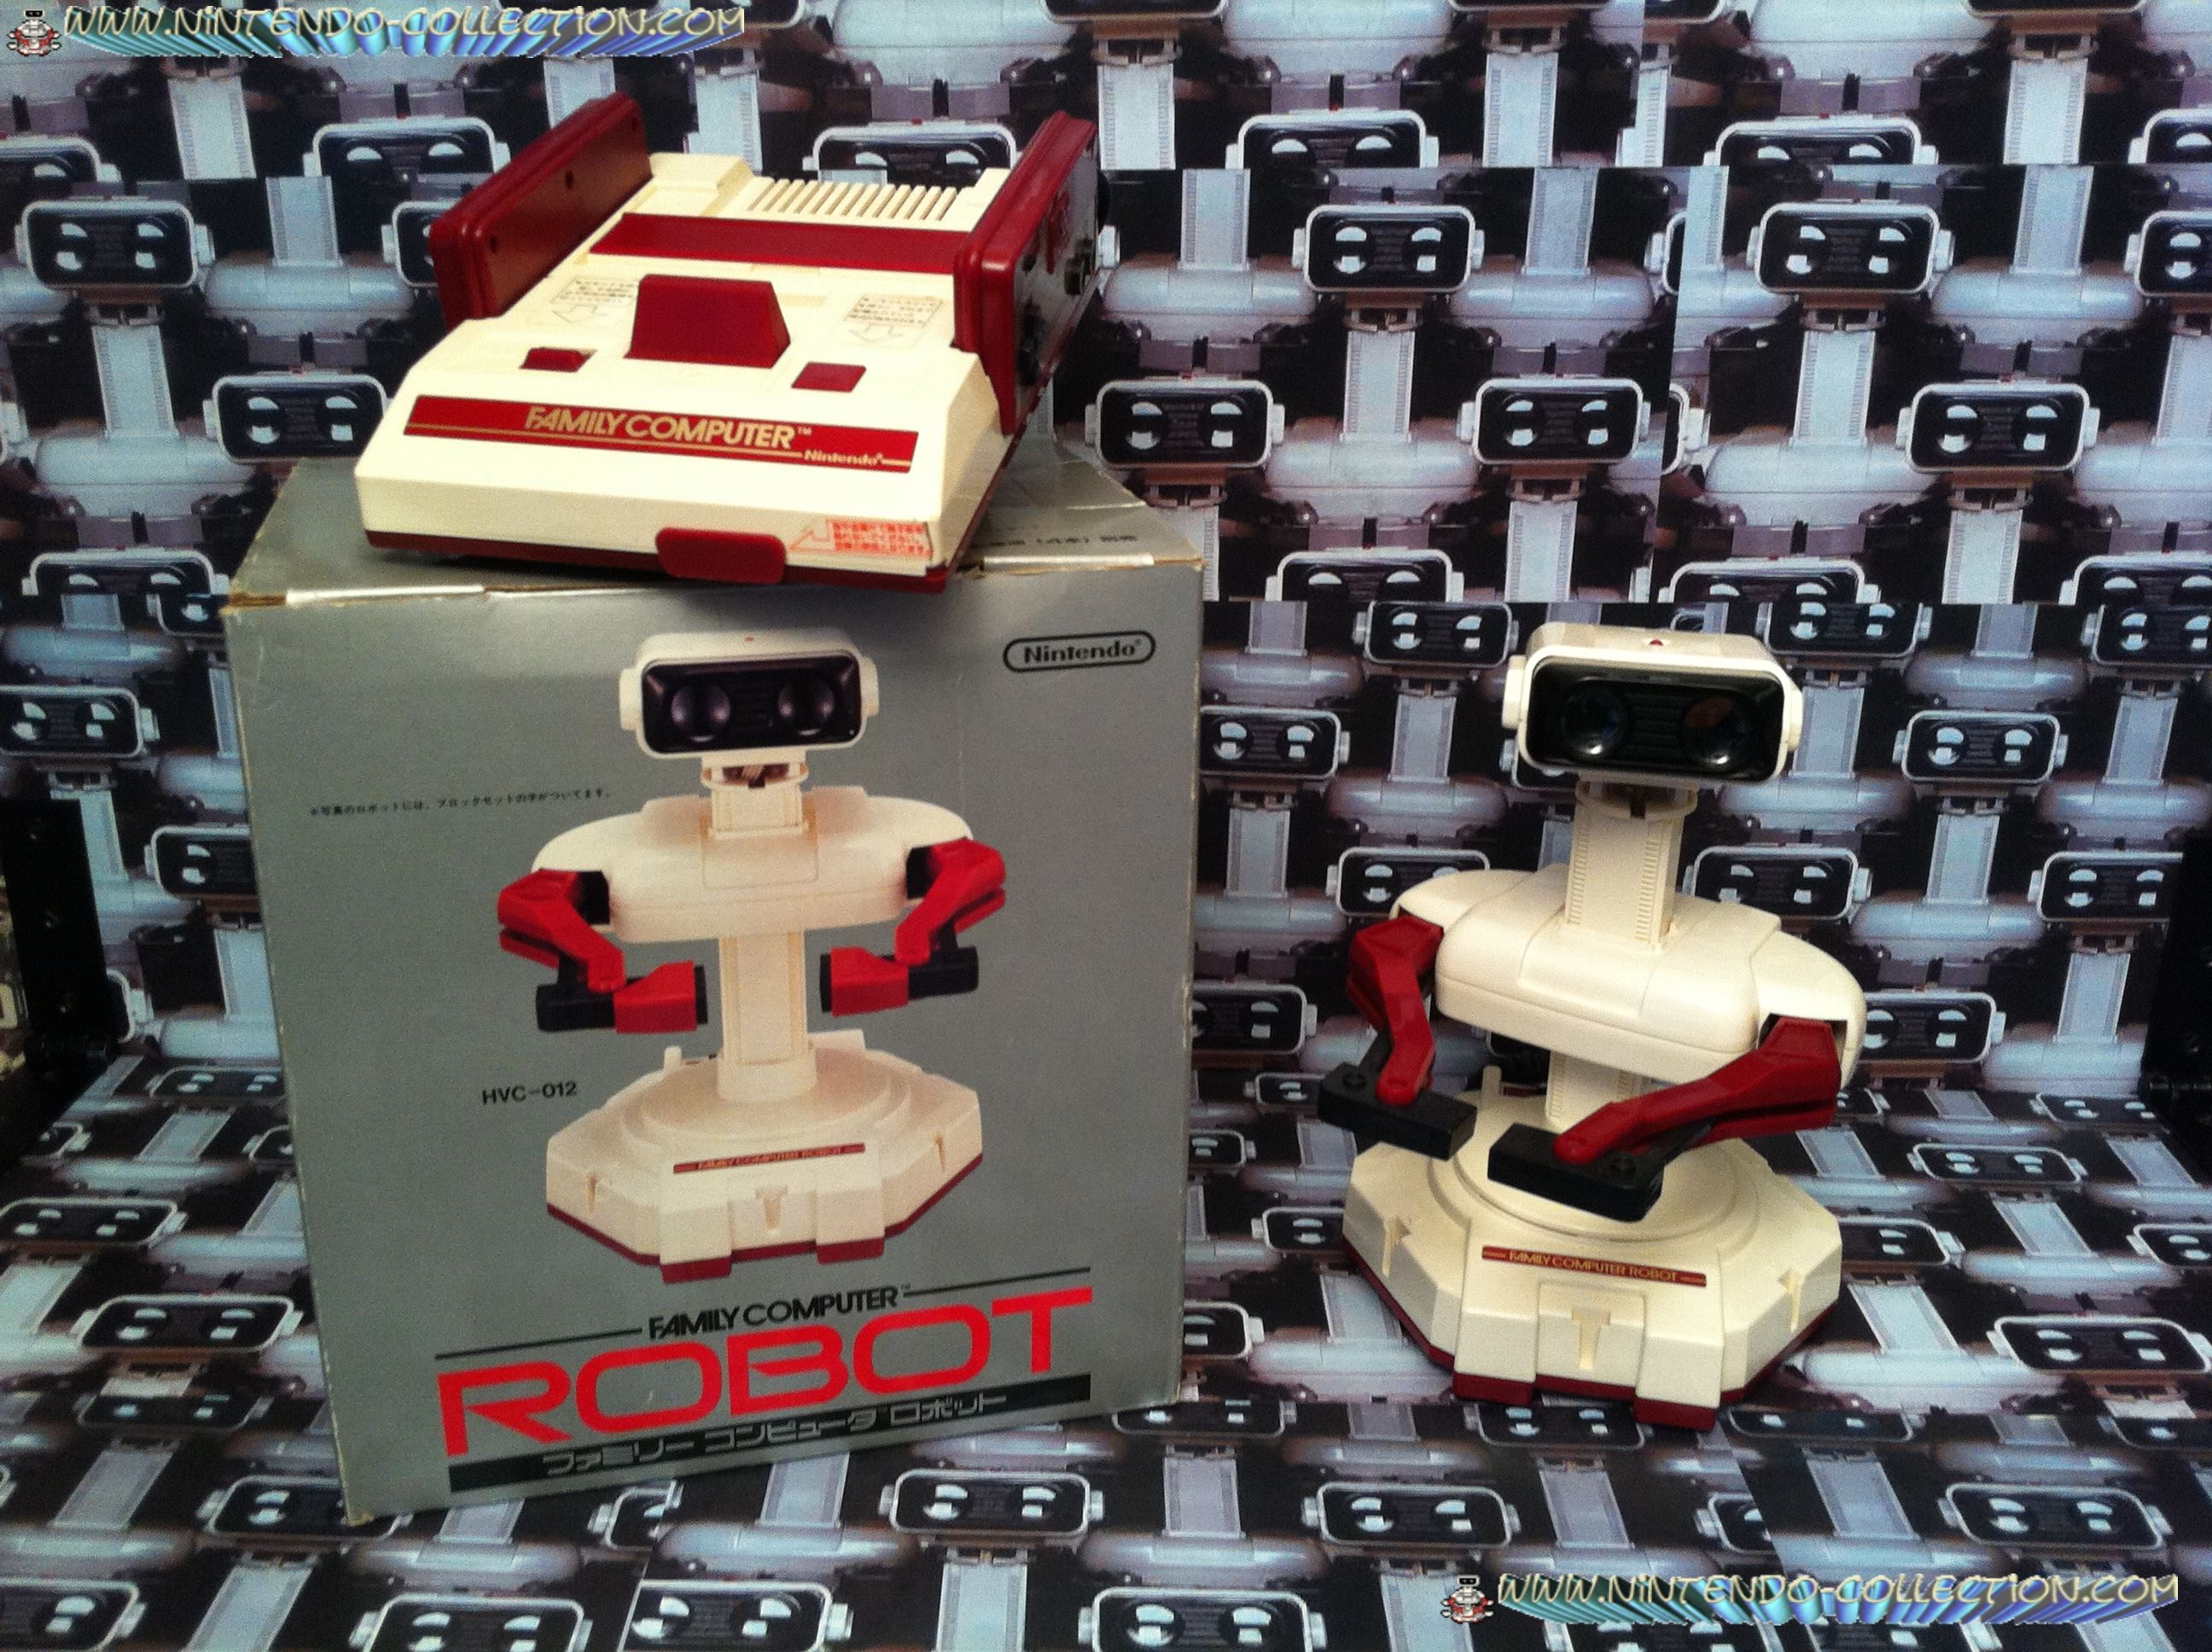 www.nintendo-collection.com -R.O.B. Famicom - 2